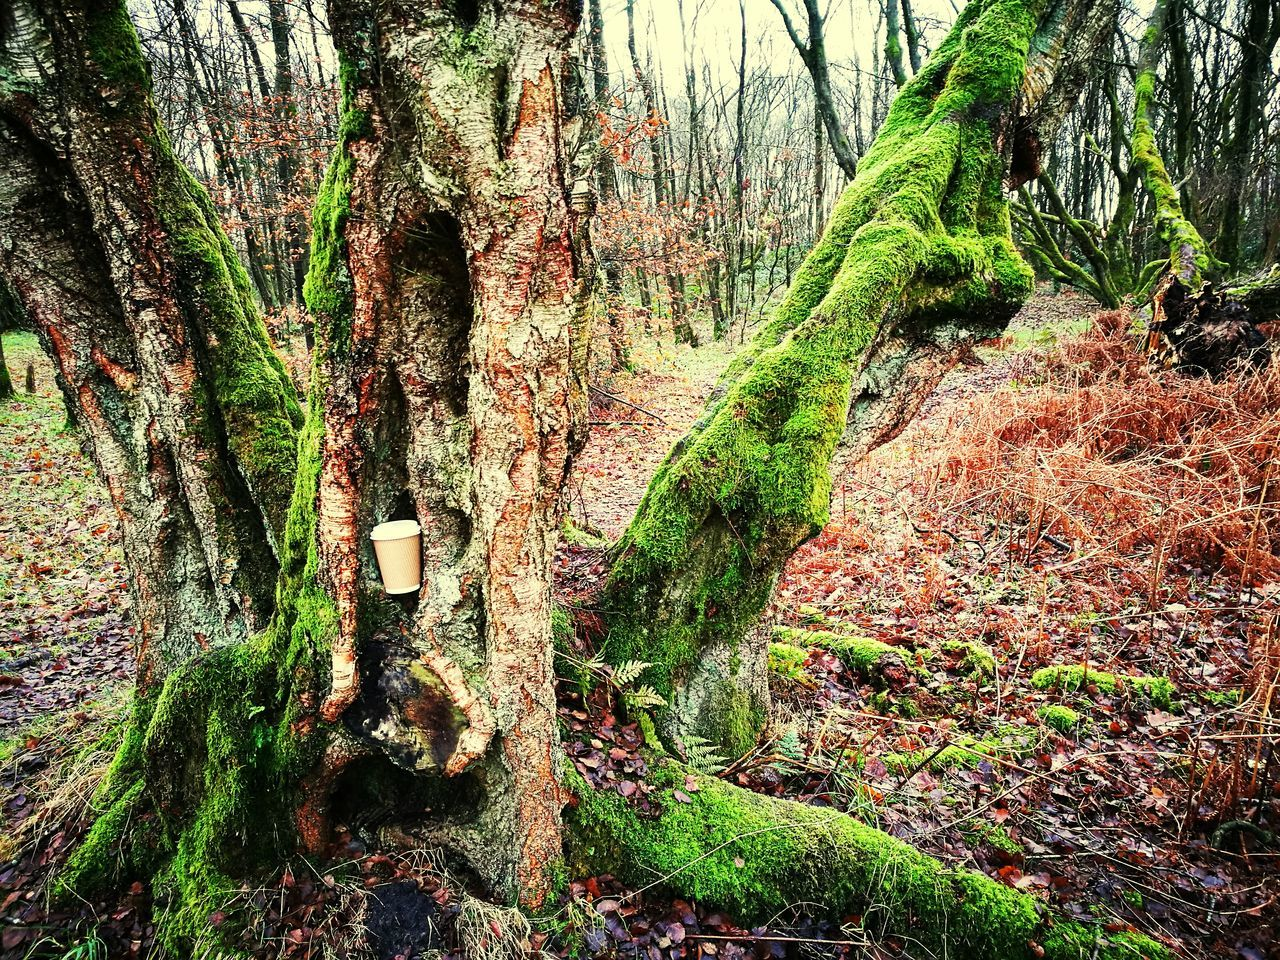 tree trunk, tree, nature, tranquility, beauty in nature, green color, growth, forest, tranquil scene, no people, day, scenics, outdoors, mountain